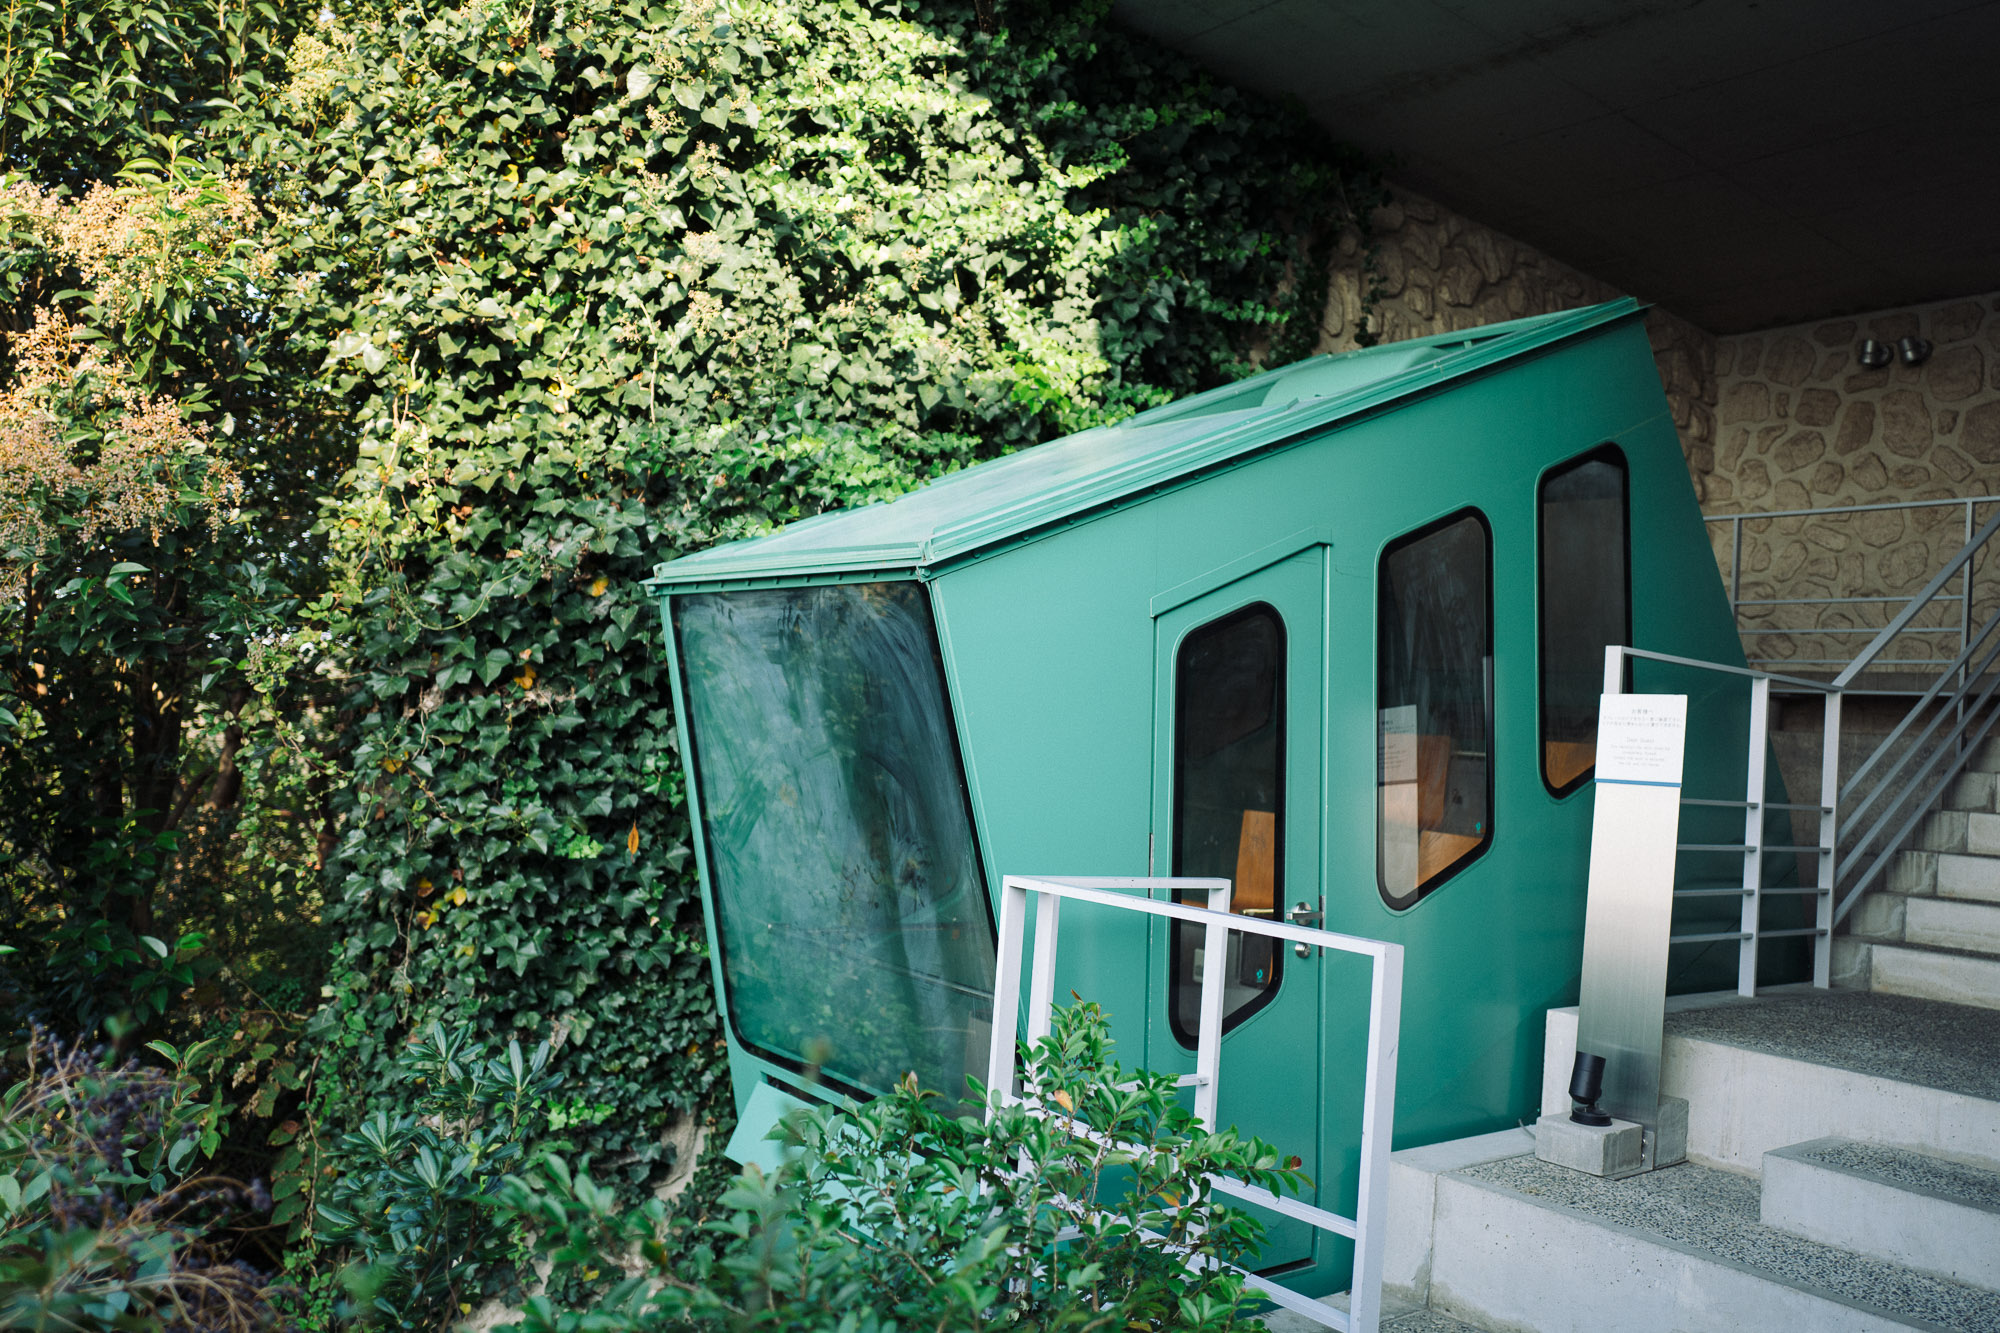 A teal funicular in lots of greenery